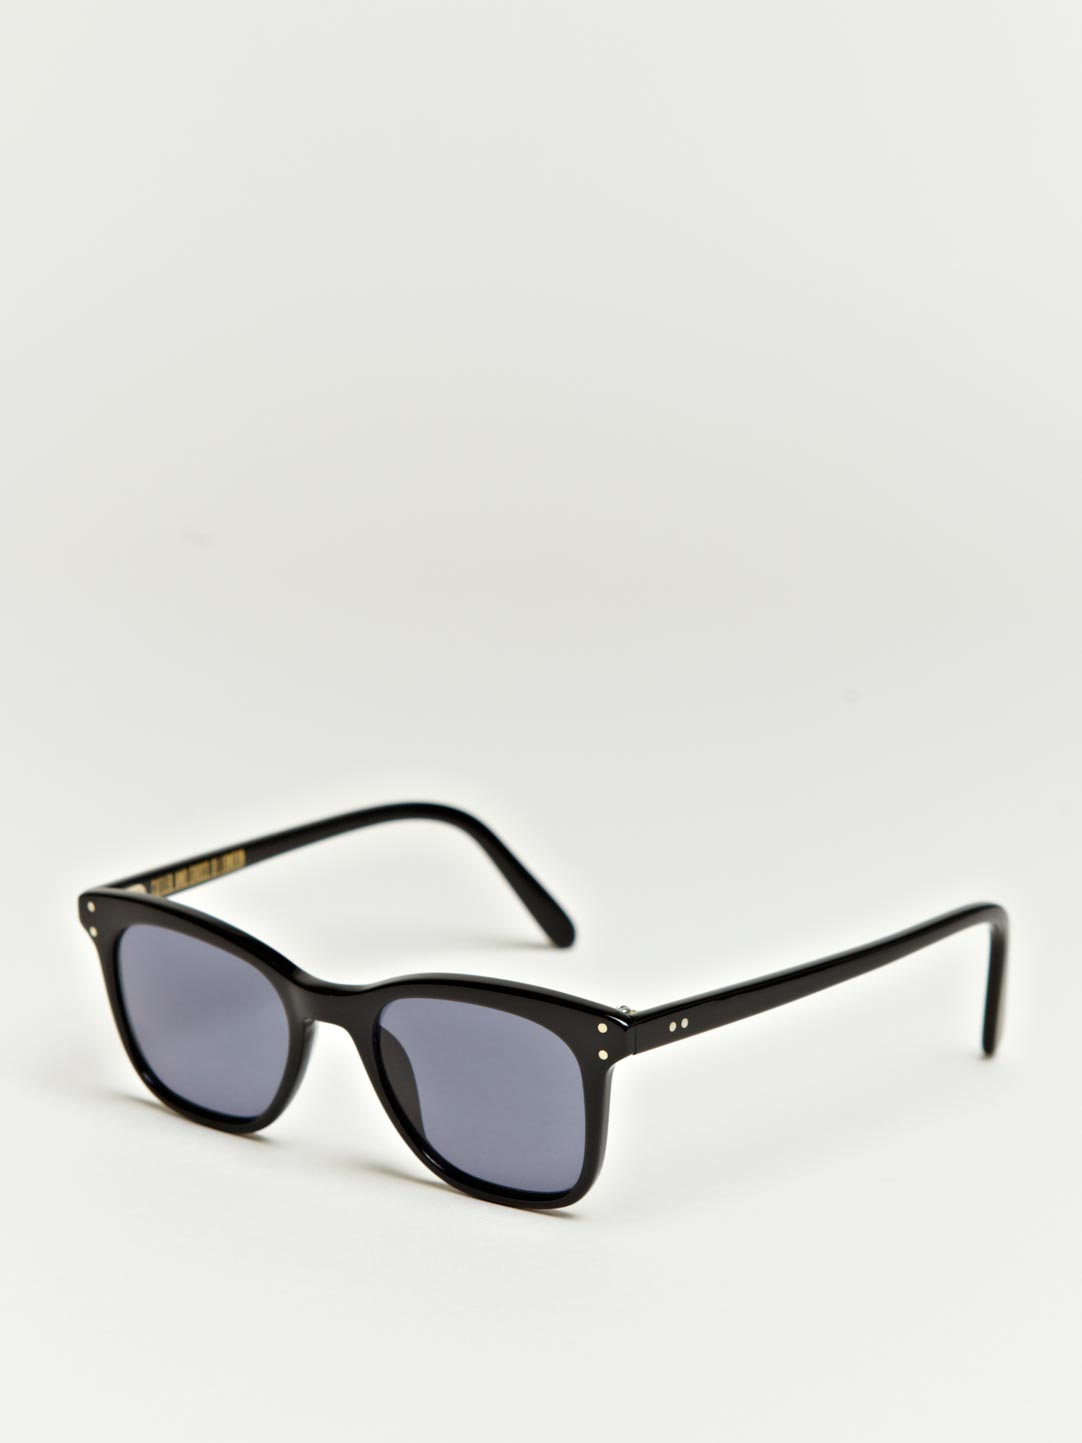 Cutler & Gross Cutler and Gross Vintage Collection Unisex ...